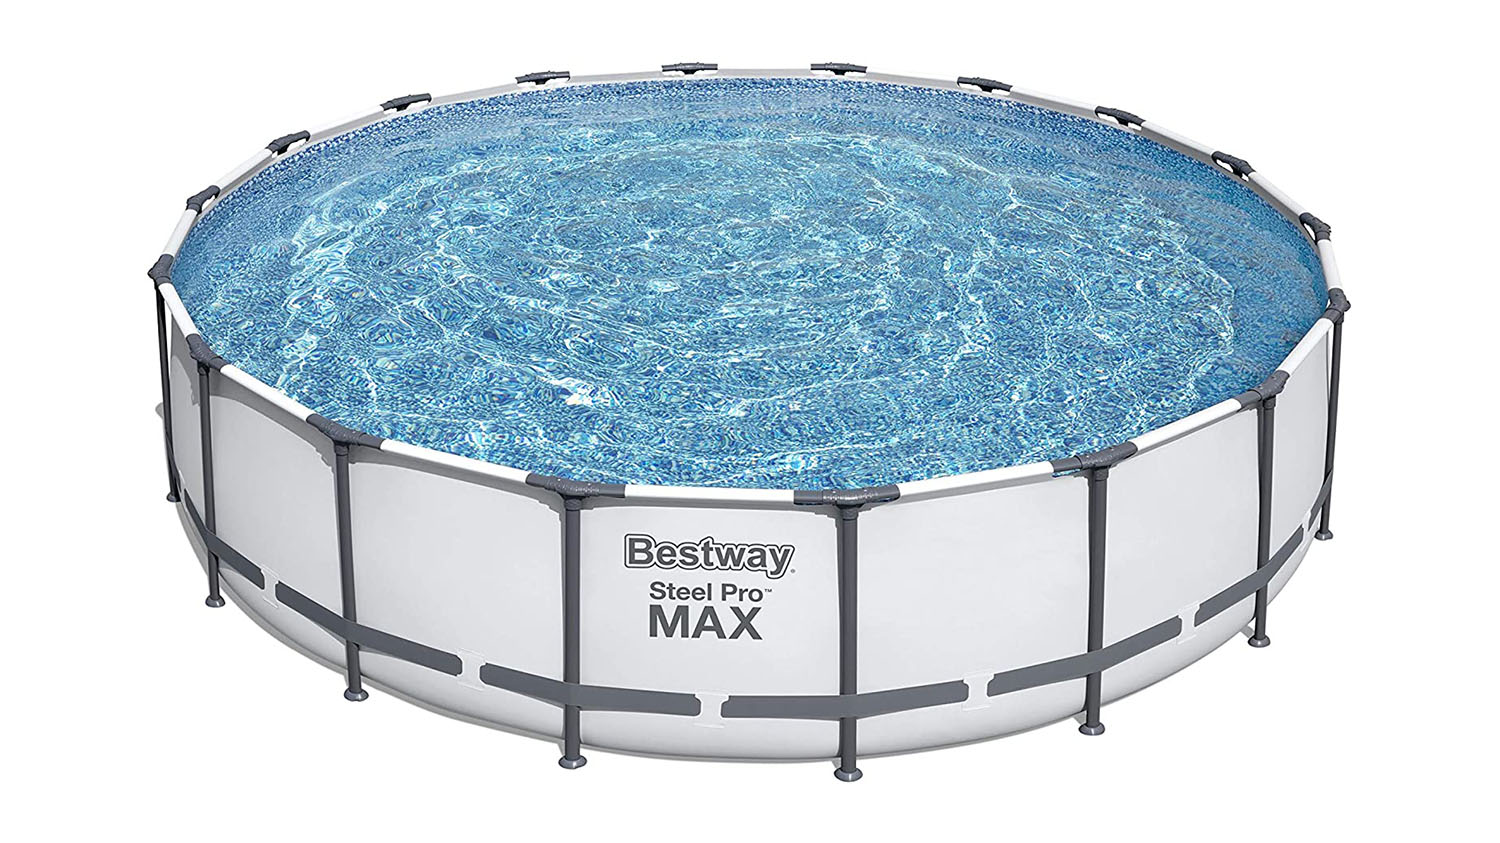 Bestway steel pro above ground pool for adults